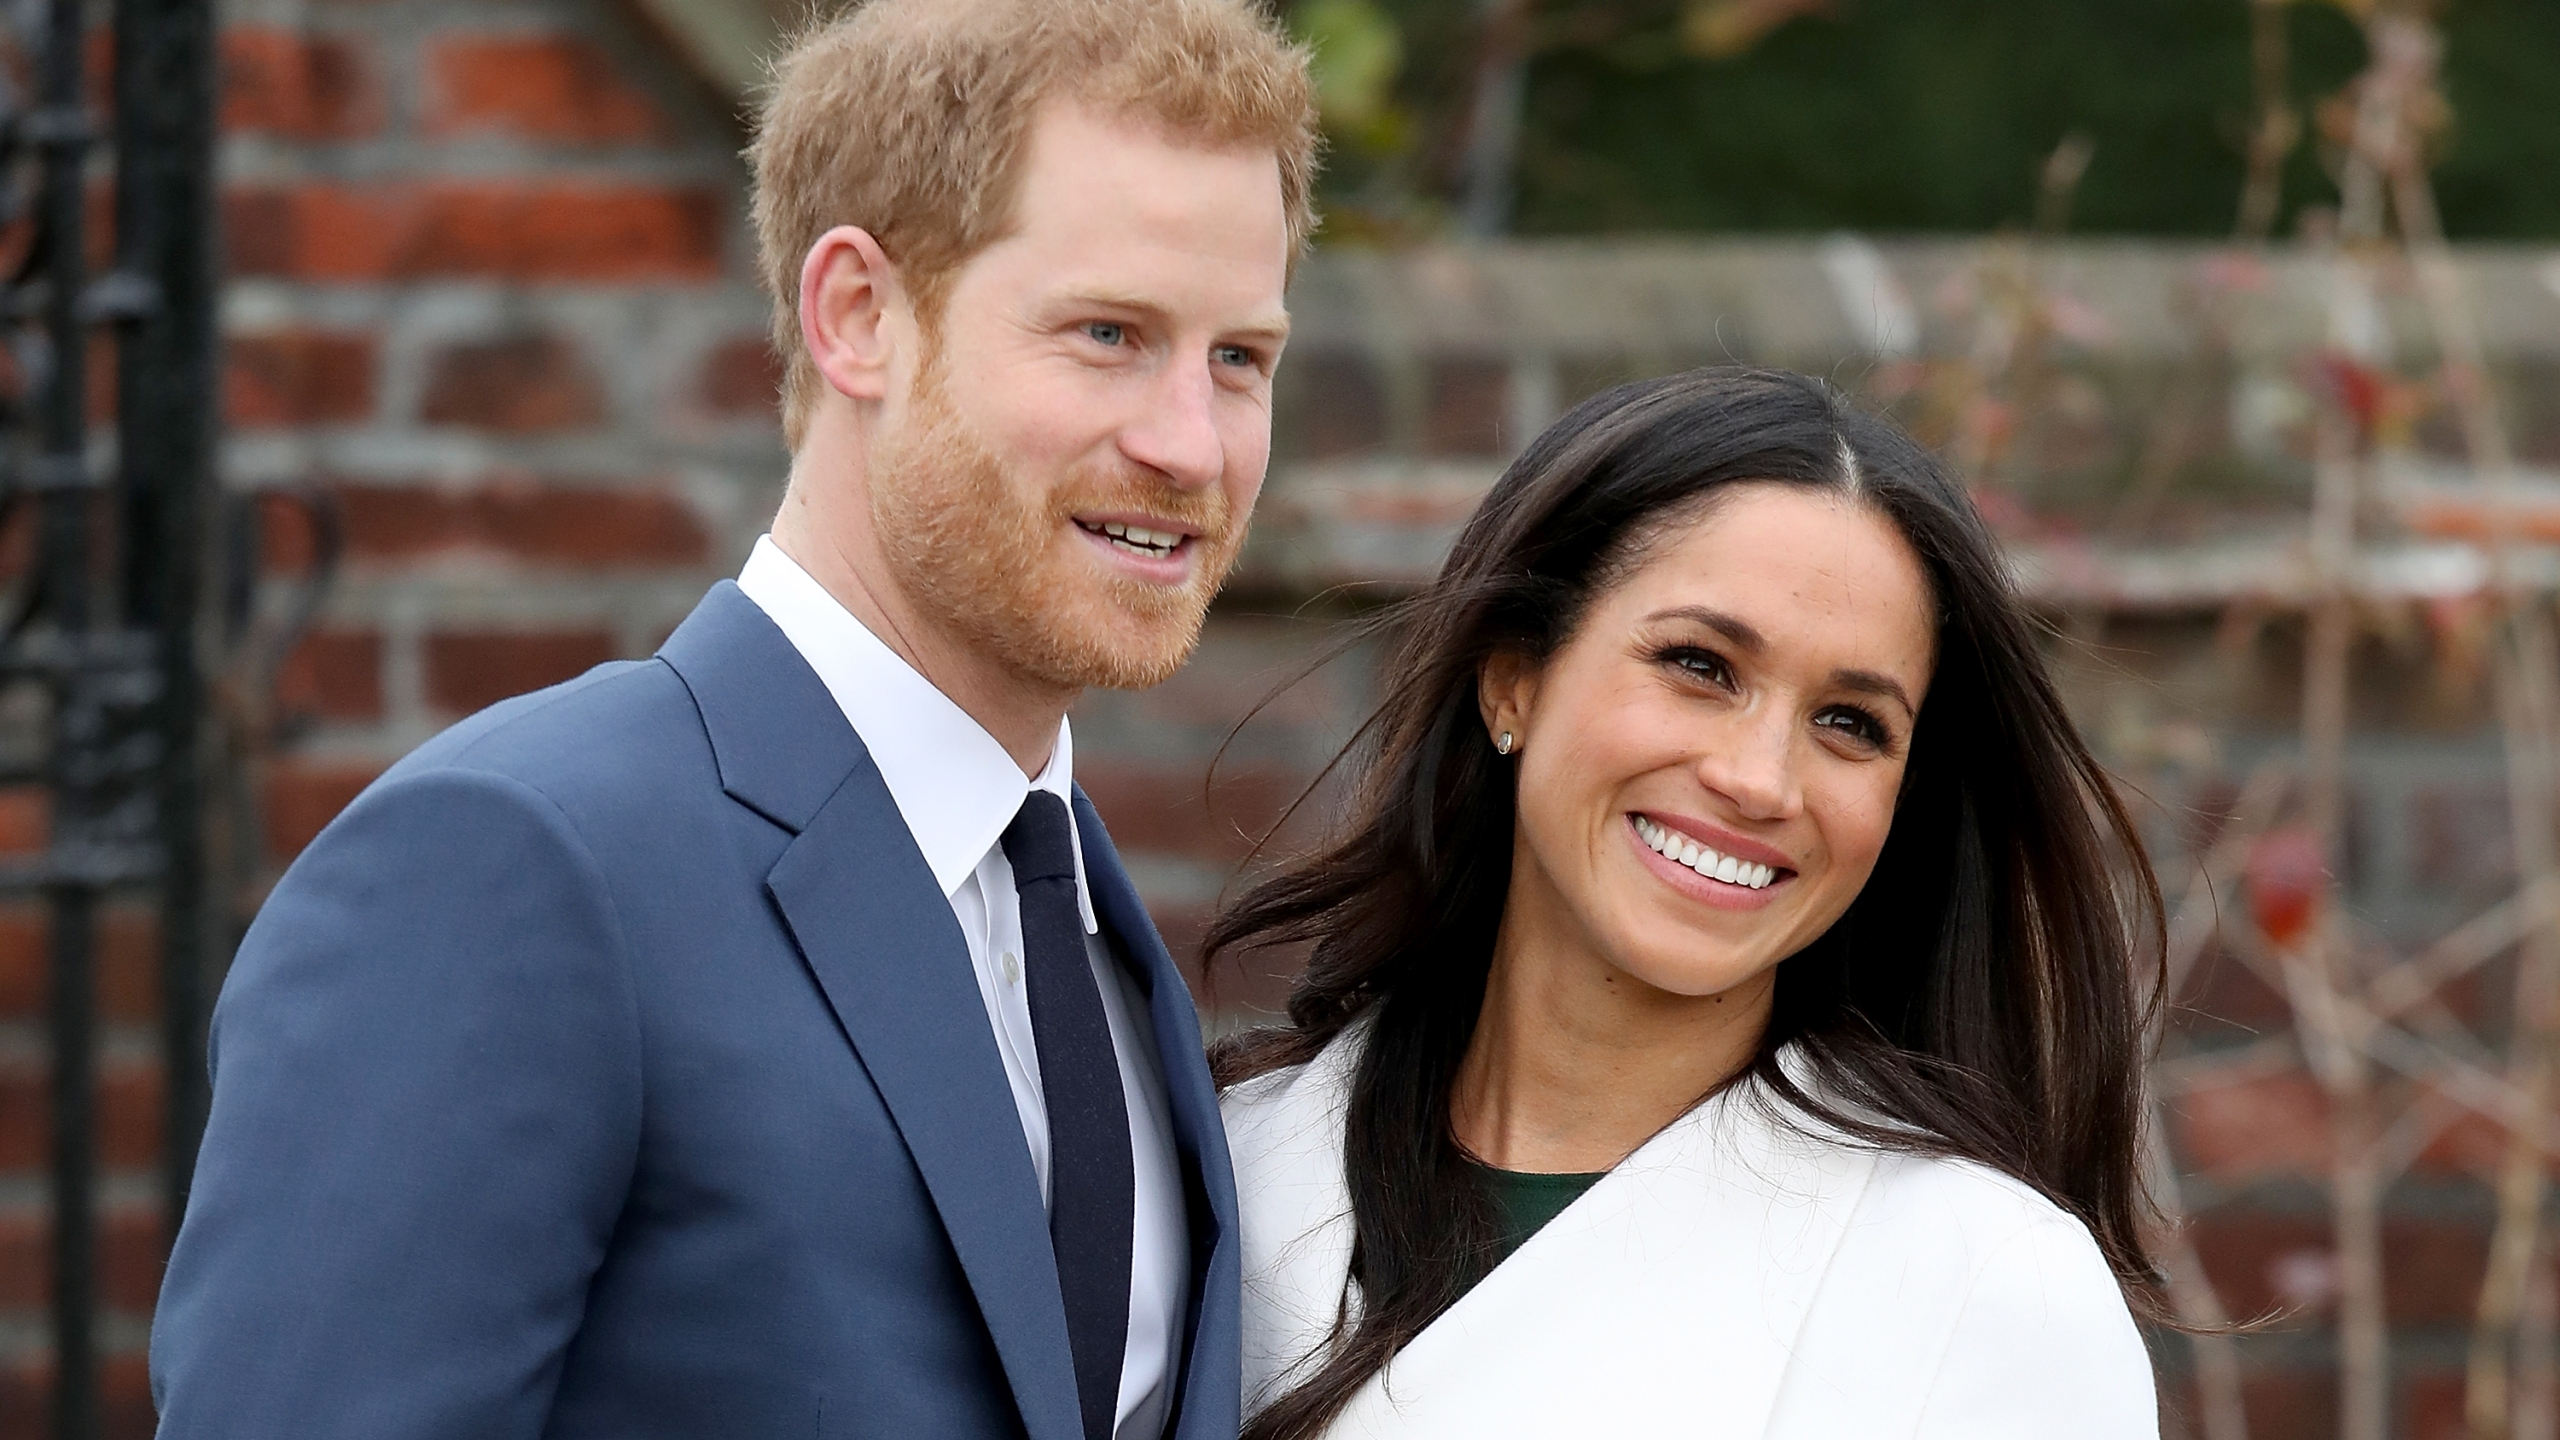 Prince Harry and actress Meghan Markle during an official photocall to announce their engagement at The Sunken Gardens at Kensington Palace on November 27, 2017, in London, England. (Chris Jackson/Chris Jackson/Getty Images)